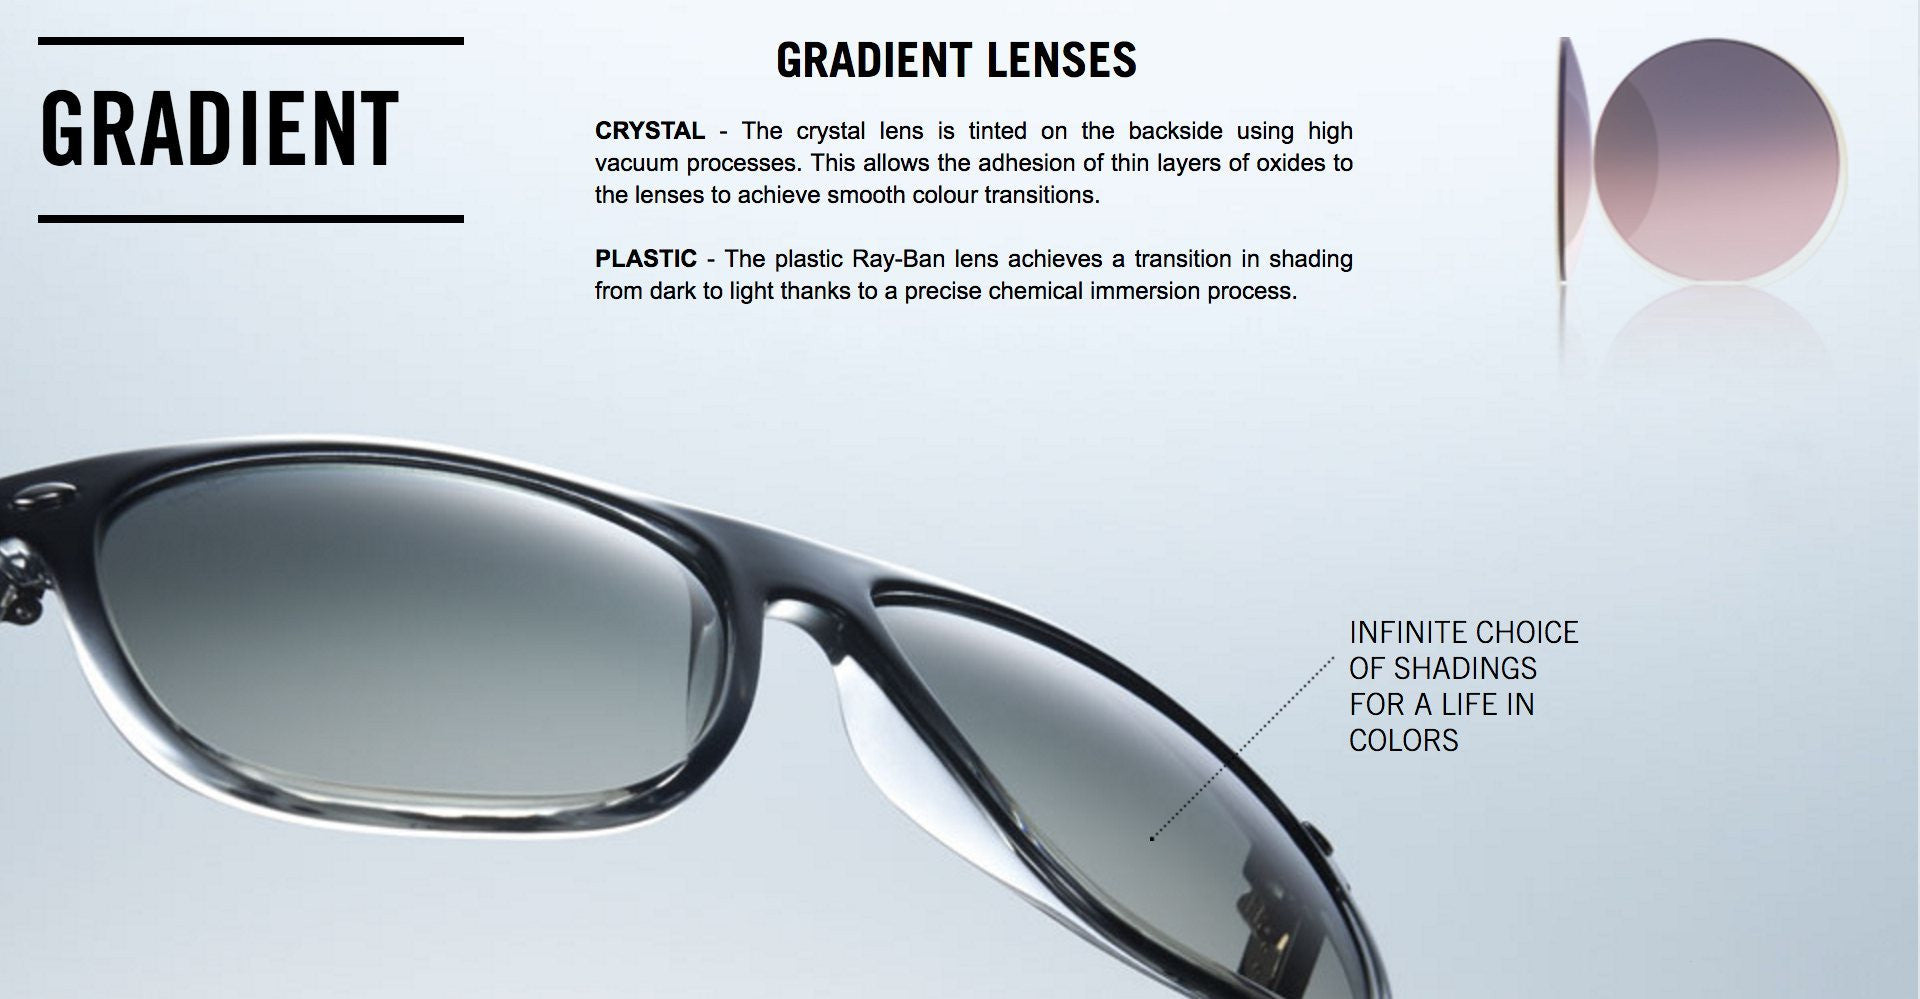 Ray-Ban Gradient Lenses